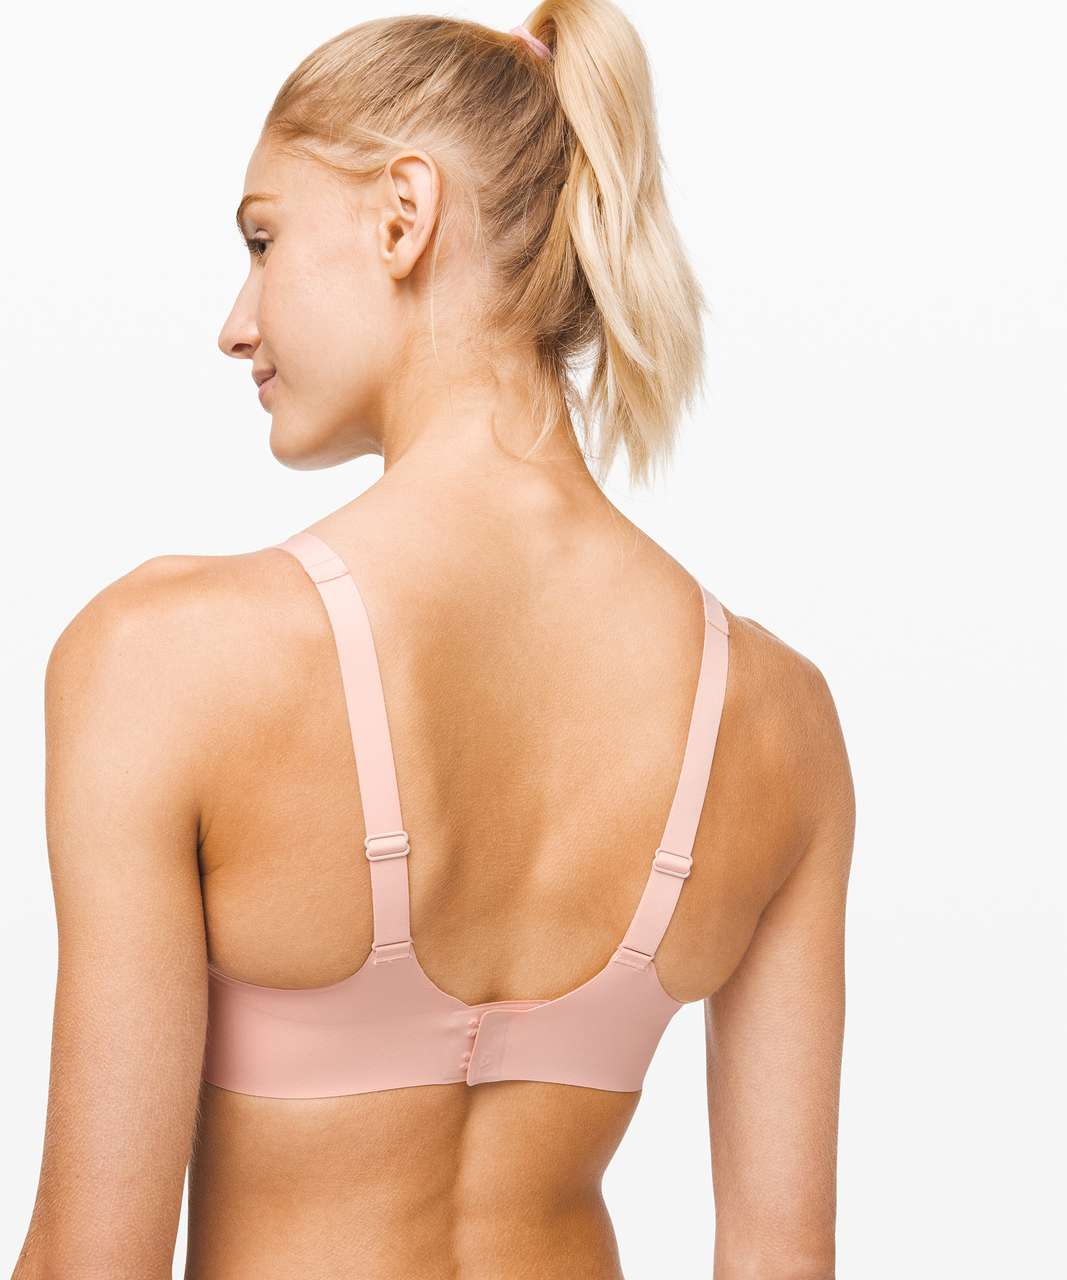 Lululemon Hold True Bra - Misty Shell